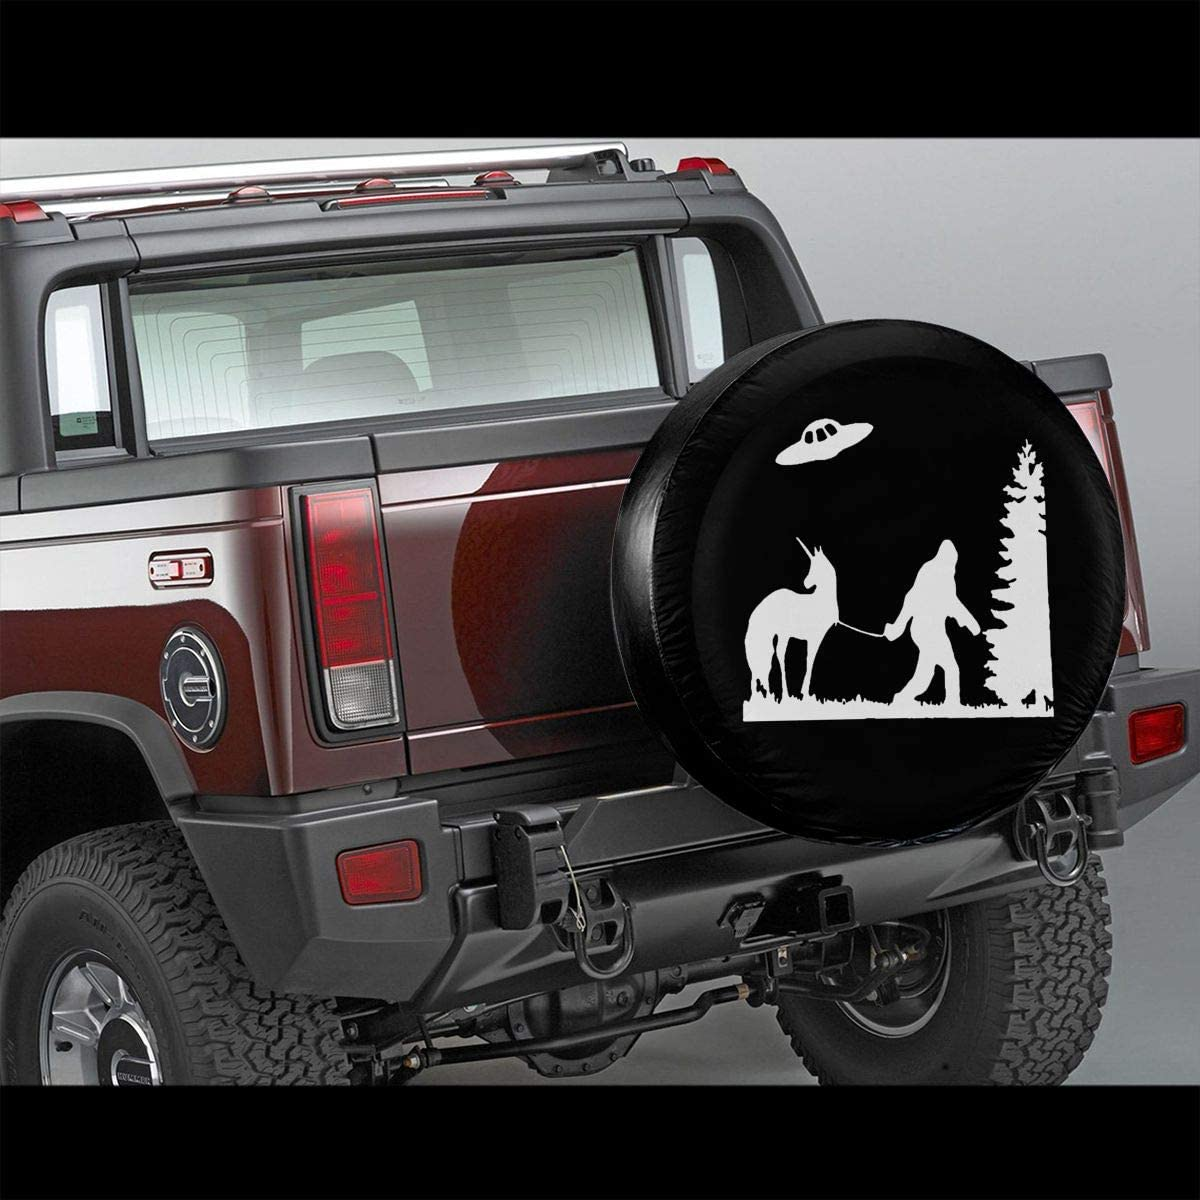 RV Trailer Bigfoot Leading A Unicorn with UFO Spare Tire Wheel Cover Waterproof Dust-Proof Universal Tire Covers Truck and Many Vehicles 14 15 16 17 Jeep SUV